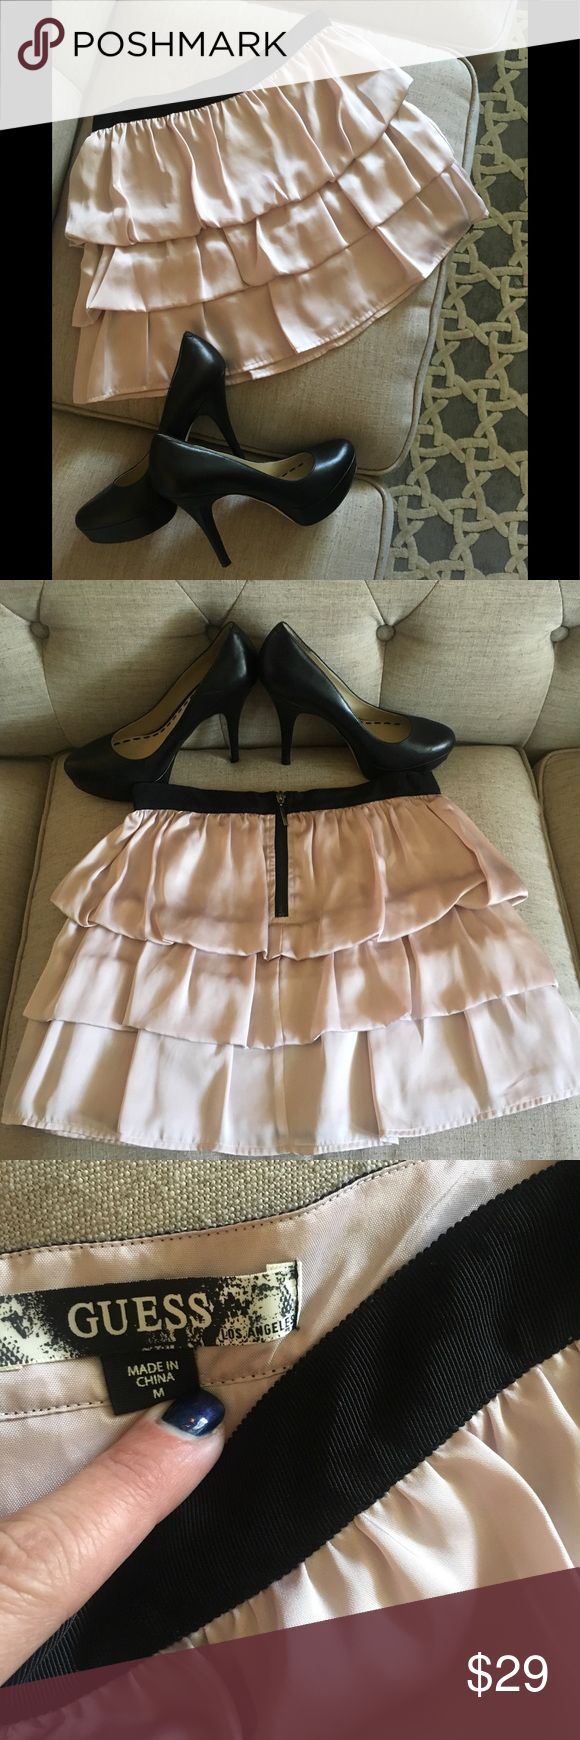 Pink ruffle mini skirt 💕 Pretty in pink 💕 Simply the cutest skirt ever!!! The fabric is super soft and it looks adorable on. Size medium made by guess. Cute for holidays! The color is pink!!! I tried to show it in the last picture! Guess Skirts Mini